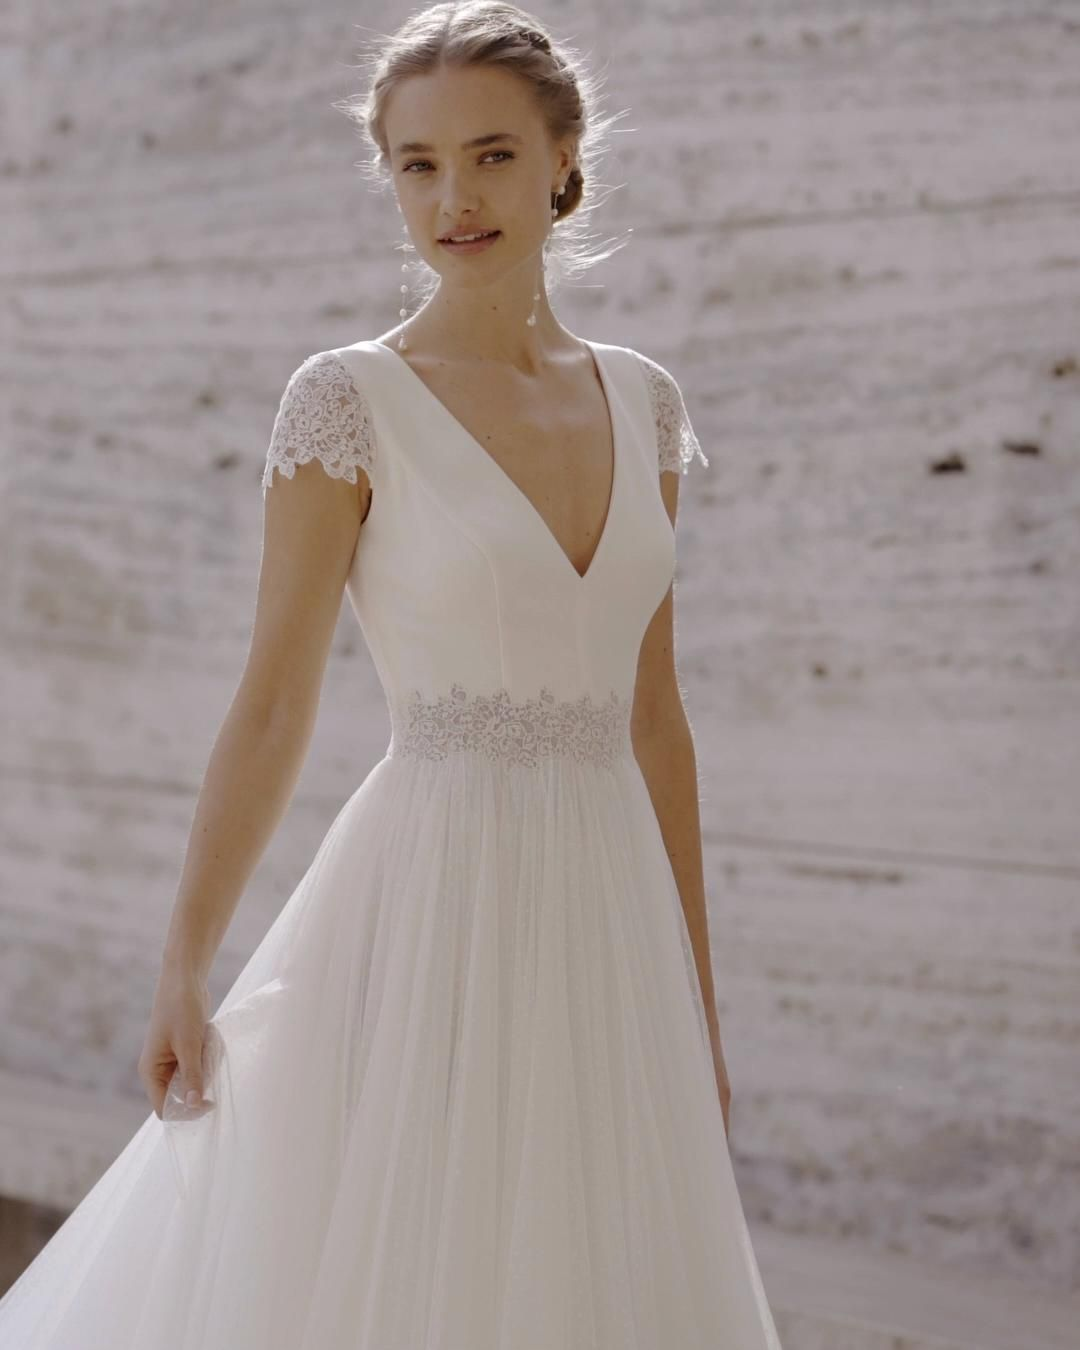 With a plain bodice and a princess silhouette, the Ecuador dress is designed for brides who love a simple and elegant